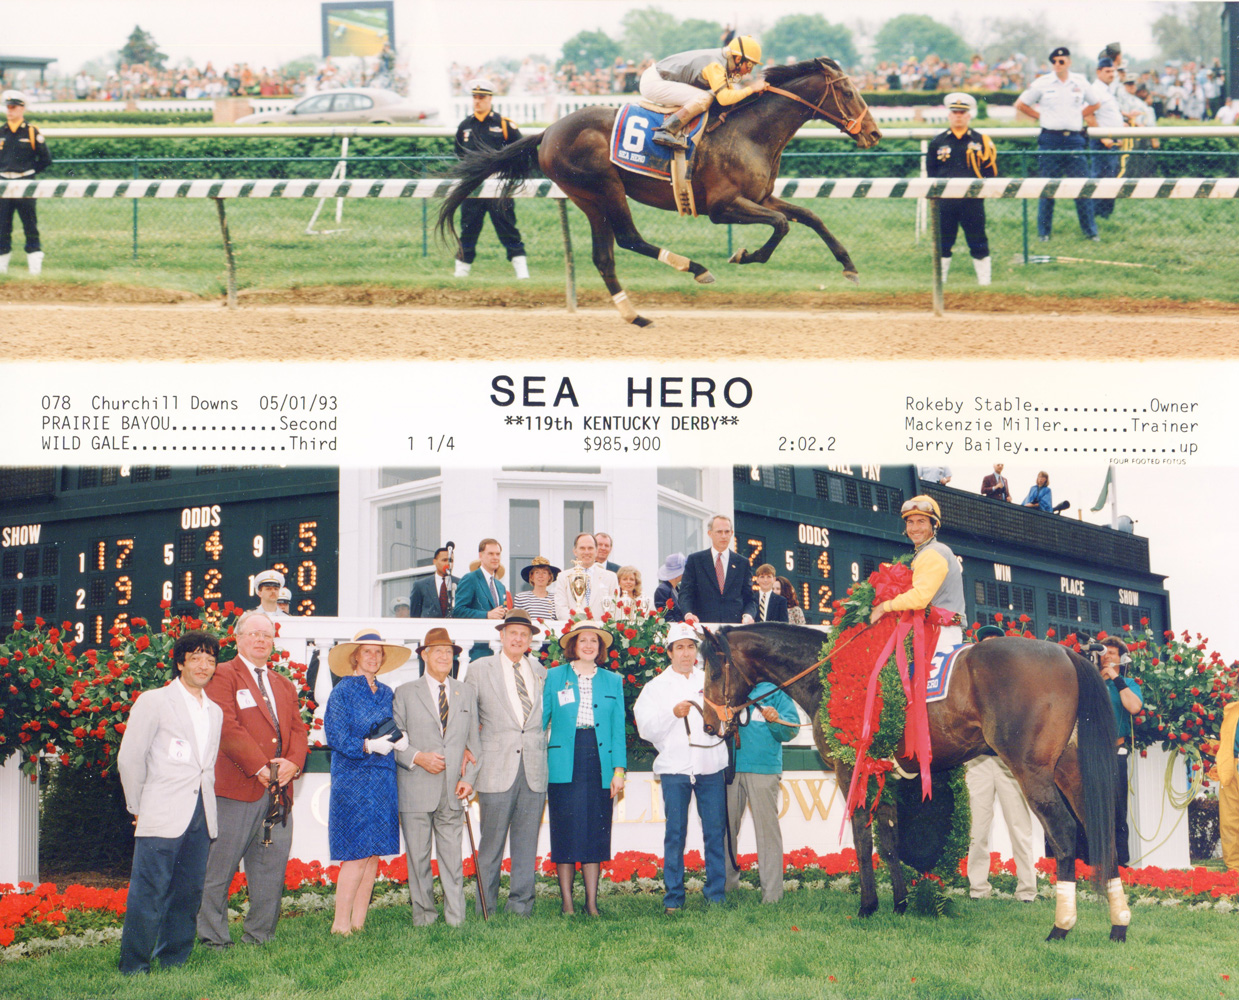 Win composite photograph for the 1993 Kentucky Derby, won by Sea Hero (trained by Mack Miller) (Four Footed Fotos, Inc./Museum Collection)